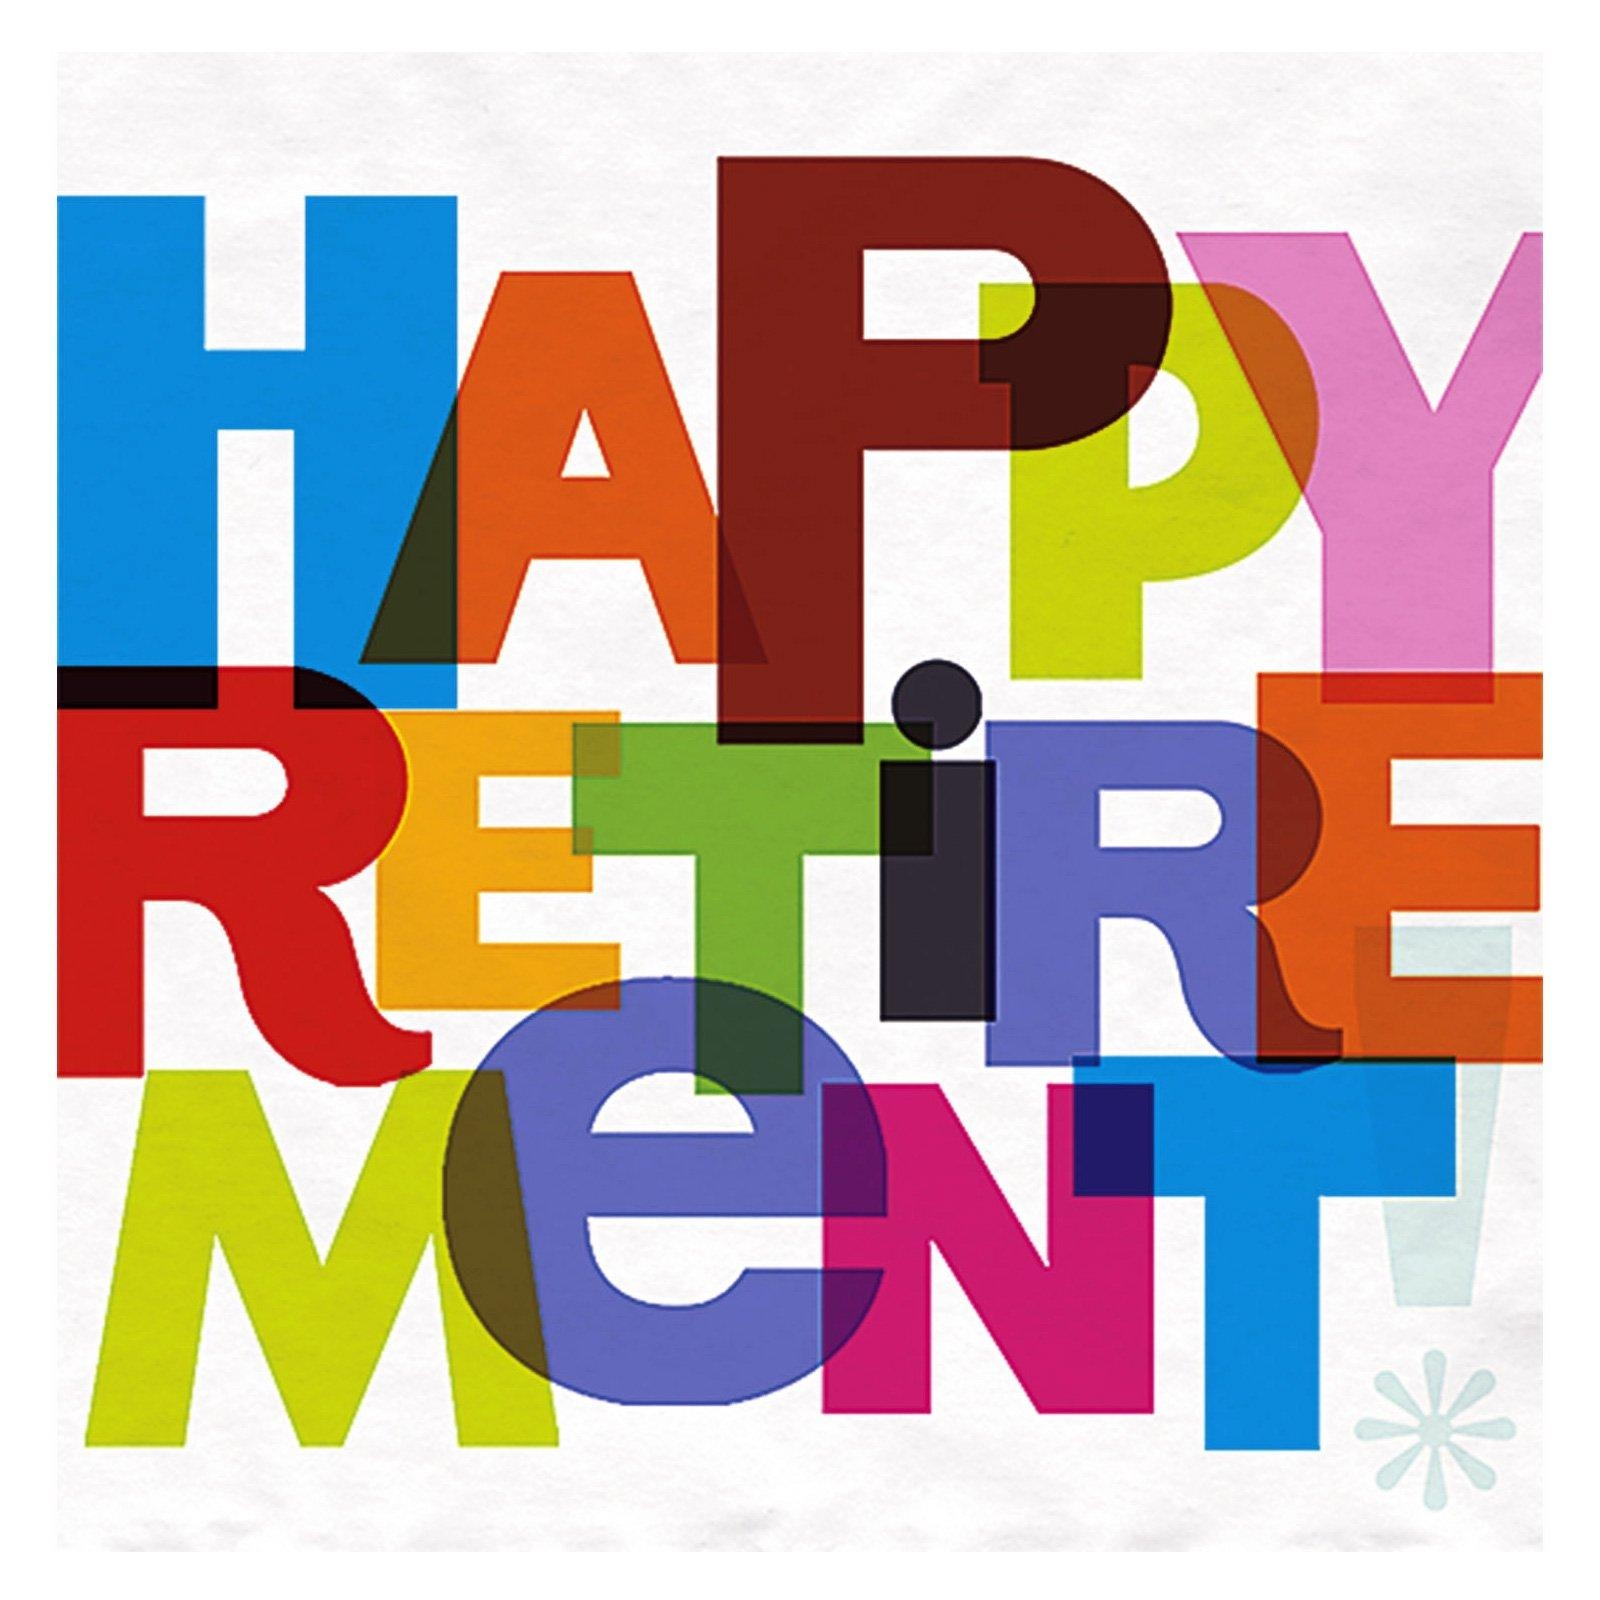 Retirement clipart. Best of collection digital